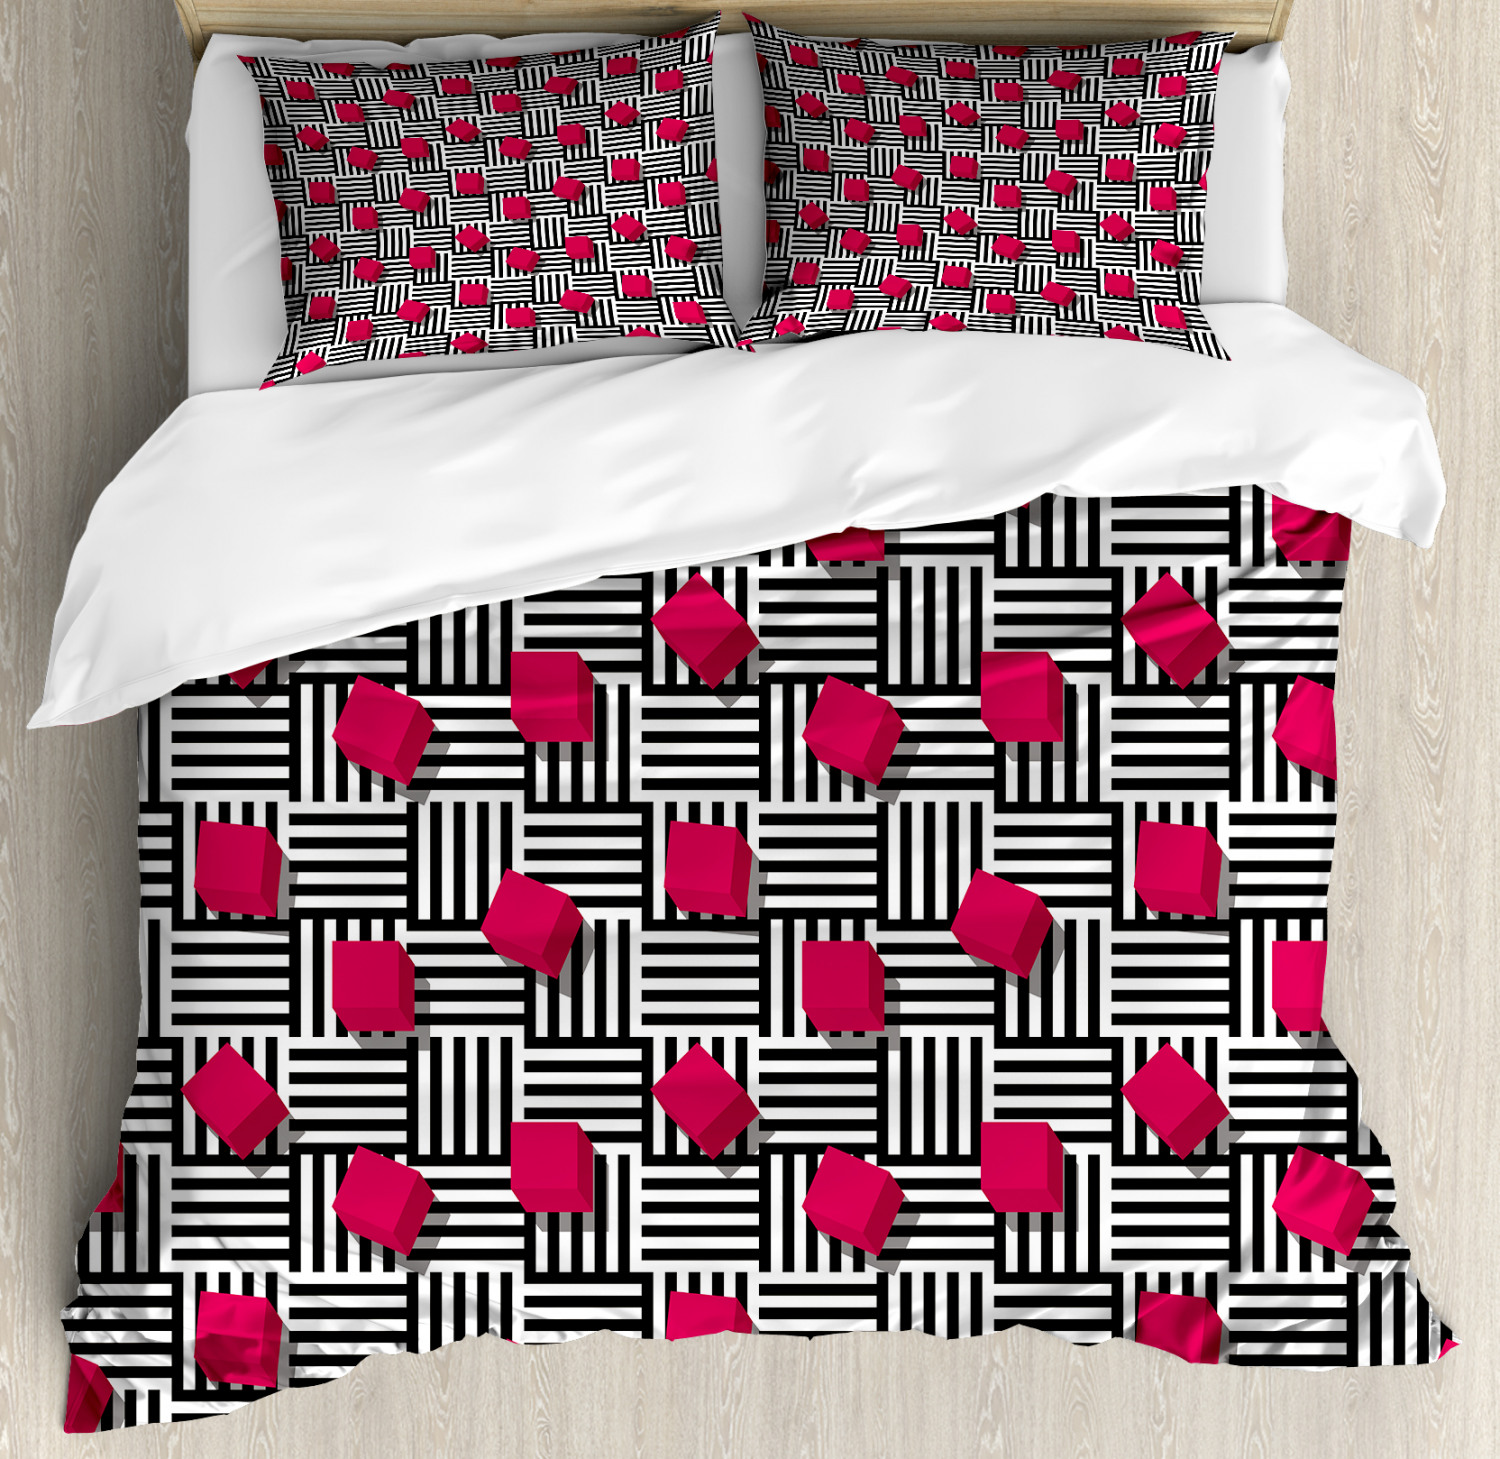 Teen Room Duvet Cover Set with Pillow Shams Geometric Artistic Print